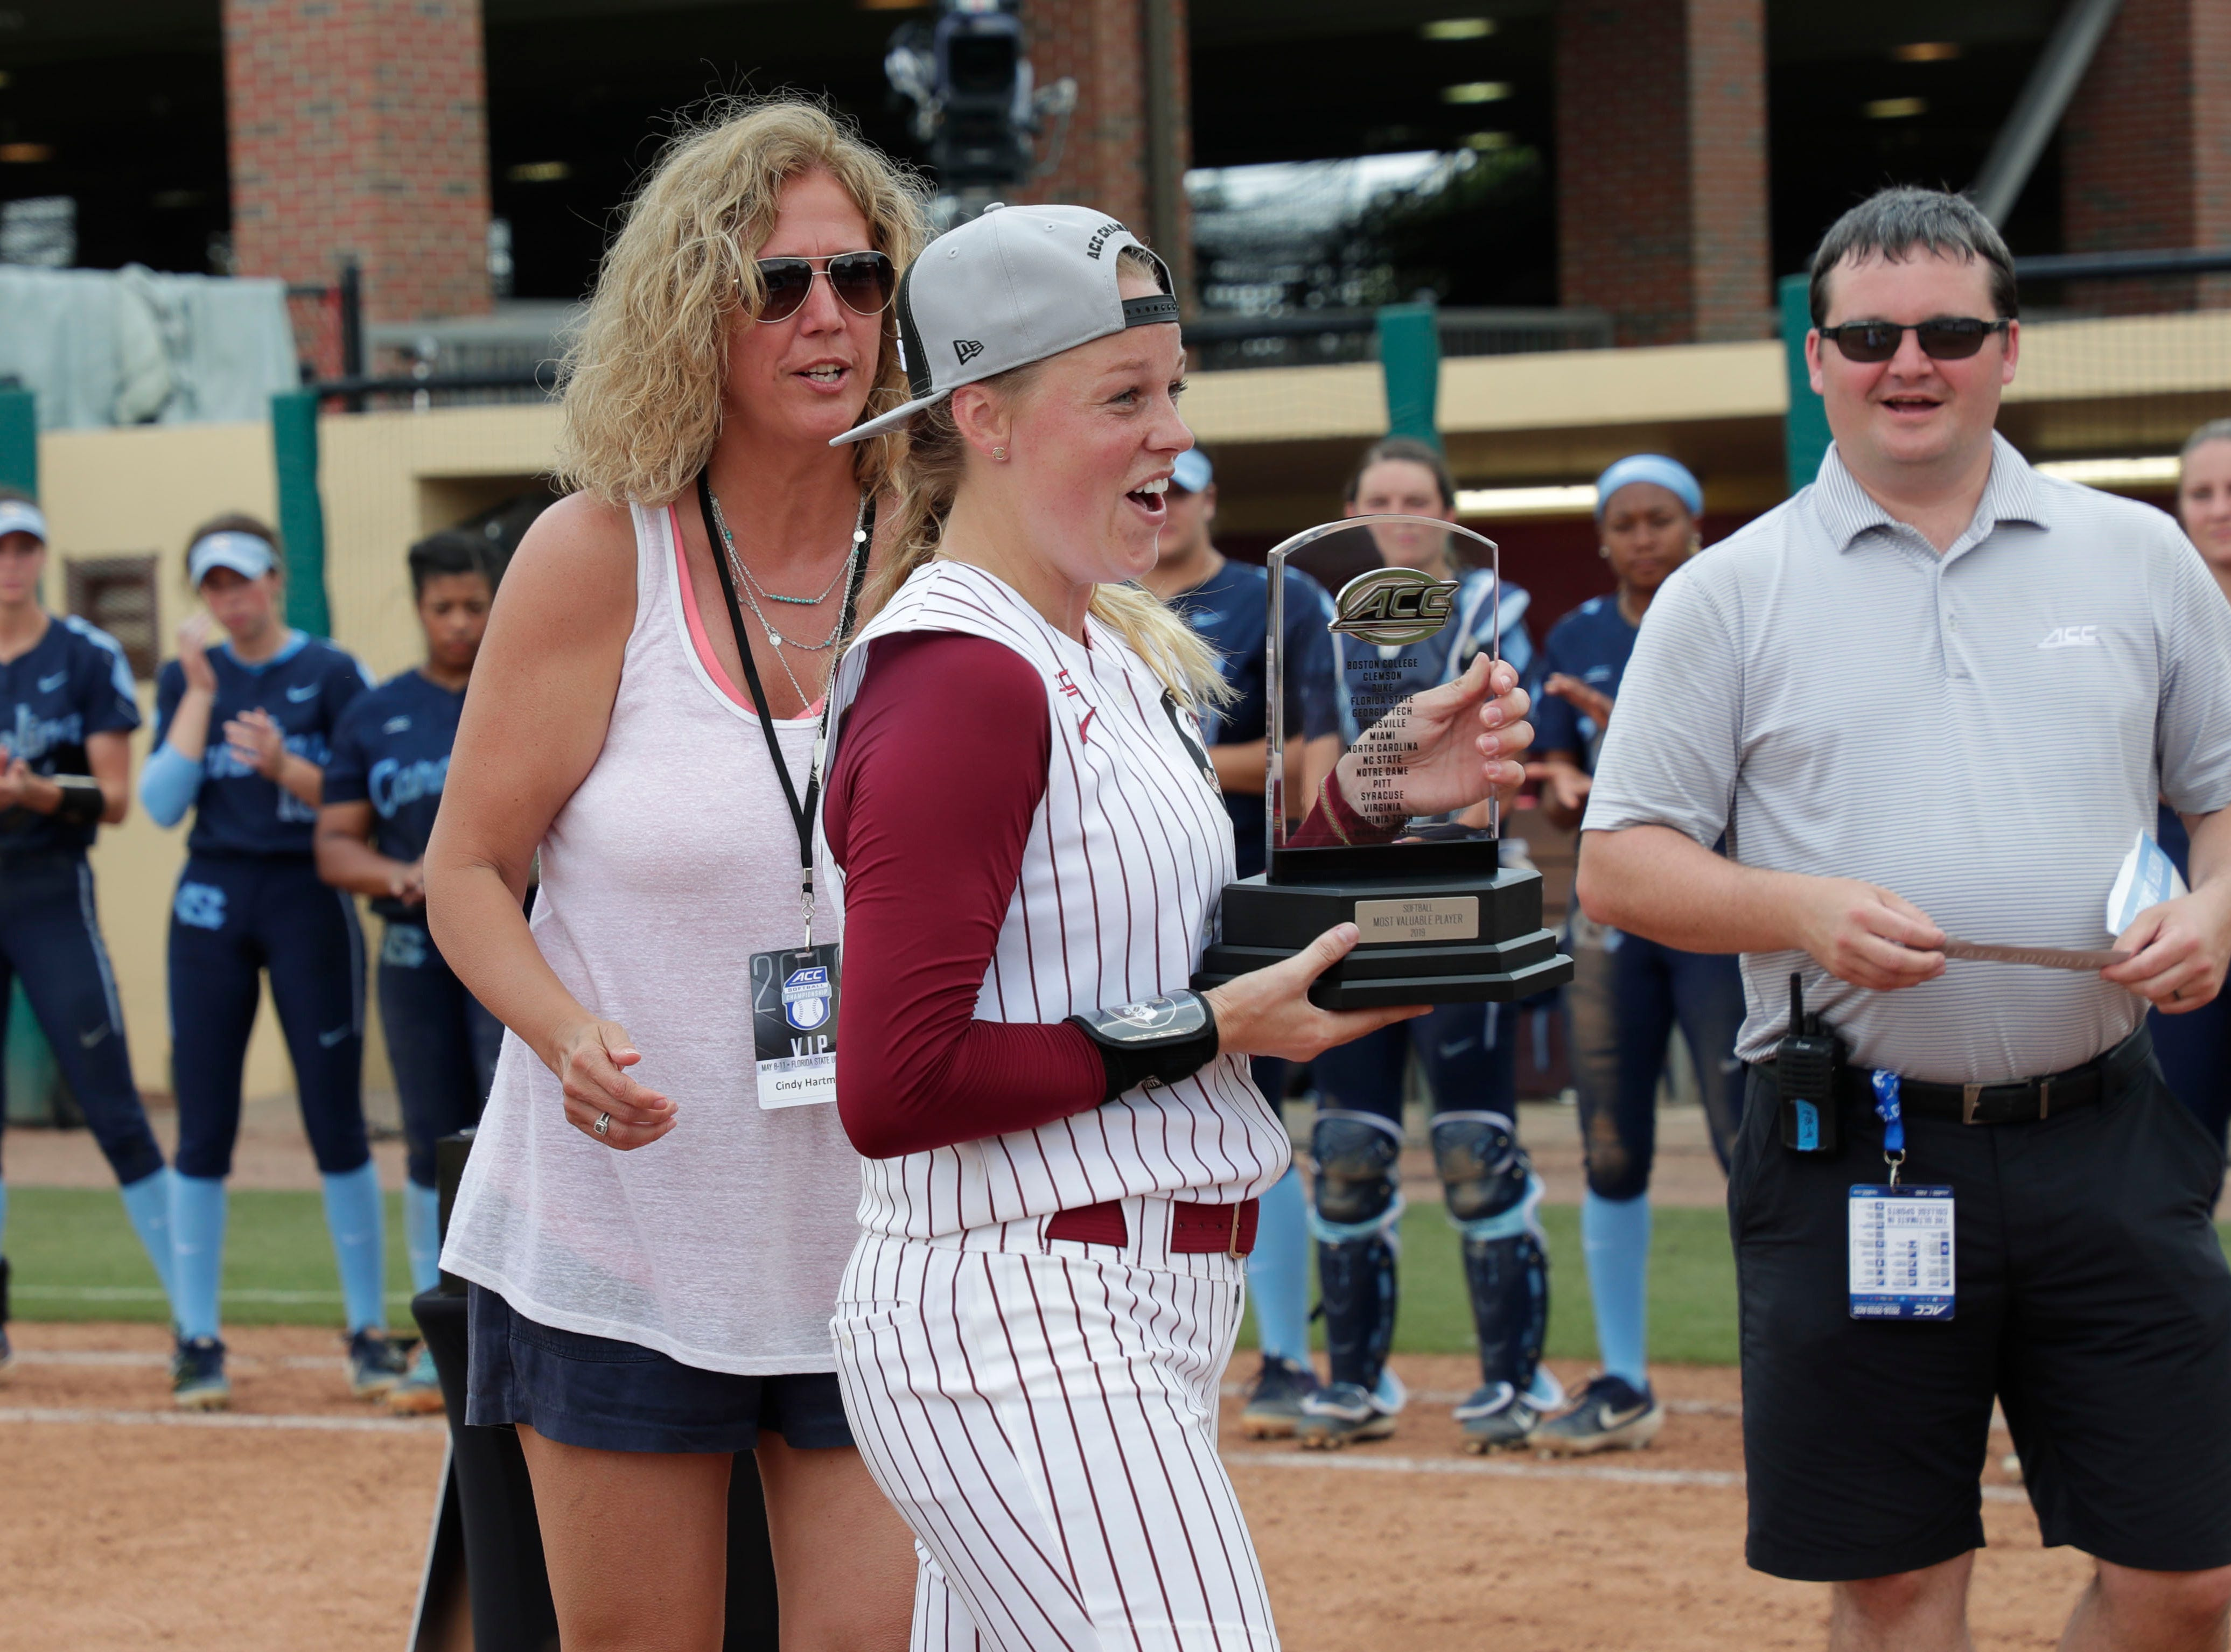 Florida State Seminoles starting pitcher/relief pitcher Meghan King (48) receives the award for MVP. The Florida State Seminoles celebrate their victory over the UNC Tar Heels for the ACC Softball Championship title Saturday, May 11, 2019.